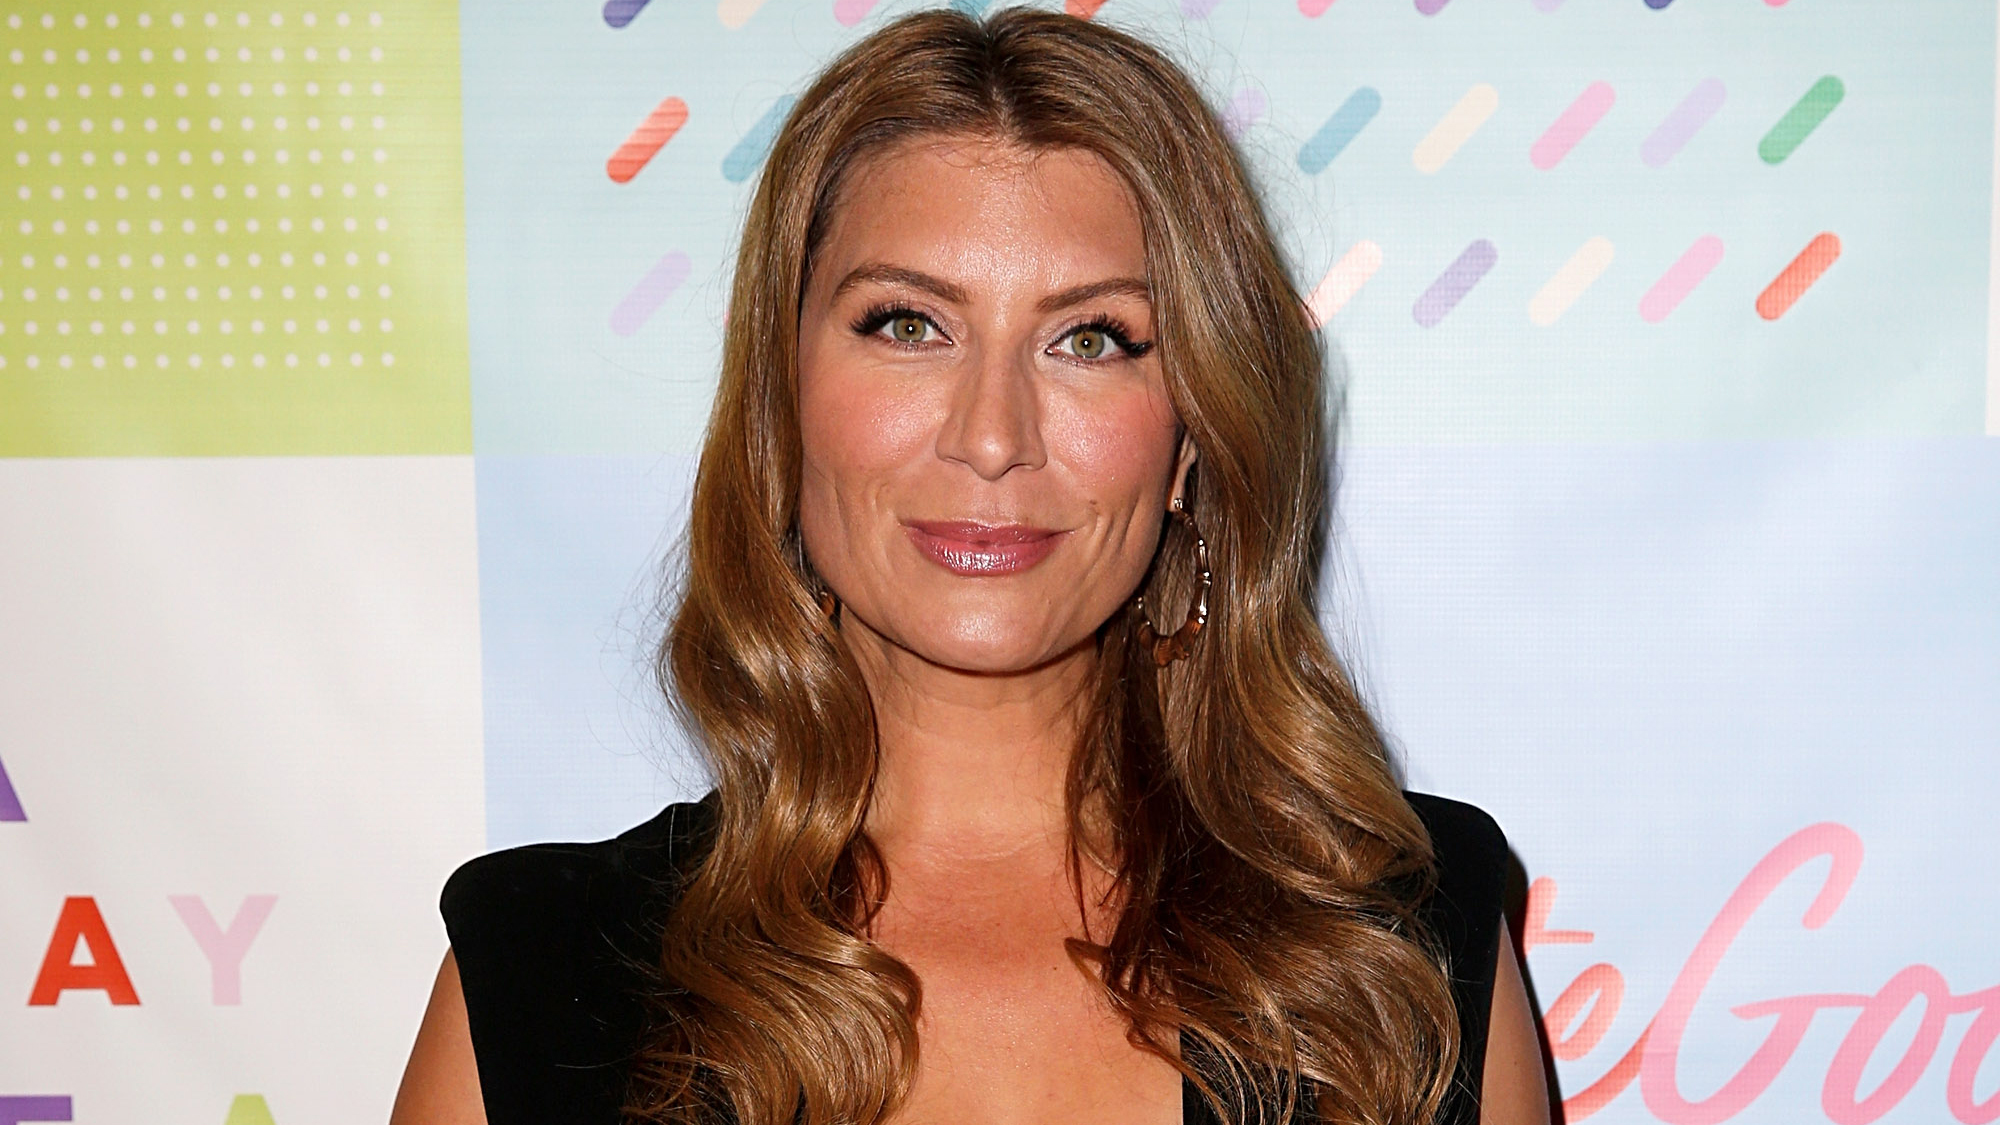 'Trading Spaces' alum Genevieve Gorder advises home renovations for mental health